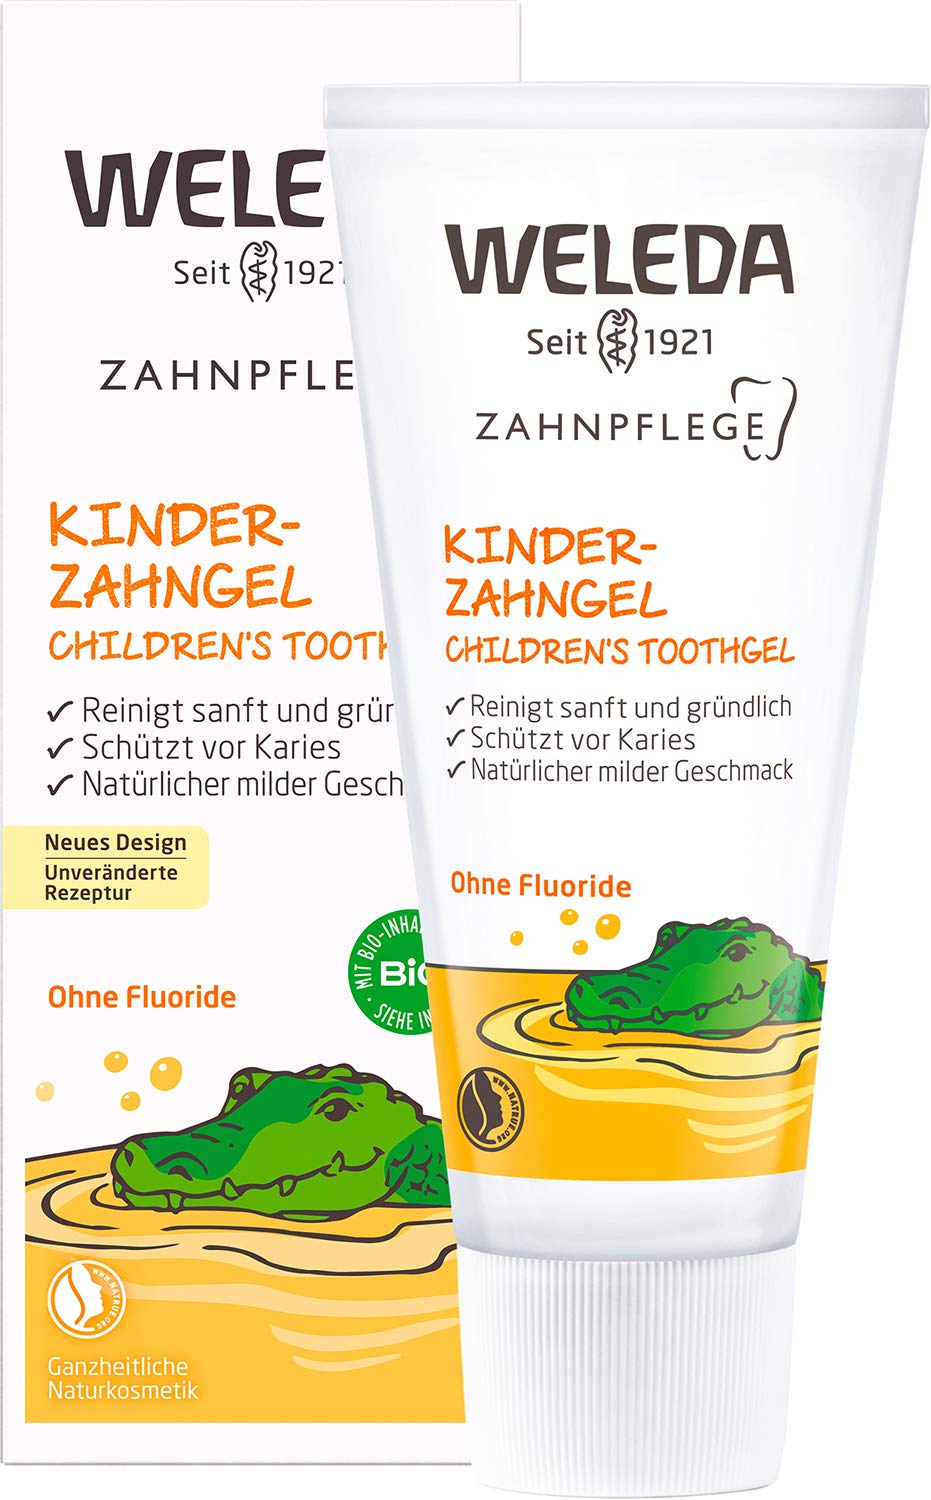 Weleda Children S Tooth Gel Natural Cosmetics Toothpaste For Natural Dental Care Of Milk Teeth And The Gums Of Children And Babies Protection Against Tooth Decay Without Fluoride 1 X 50 Ml Amazon De